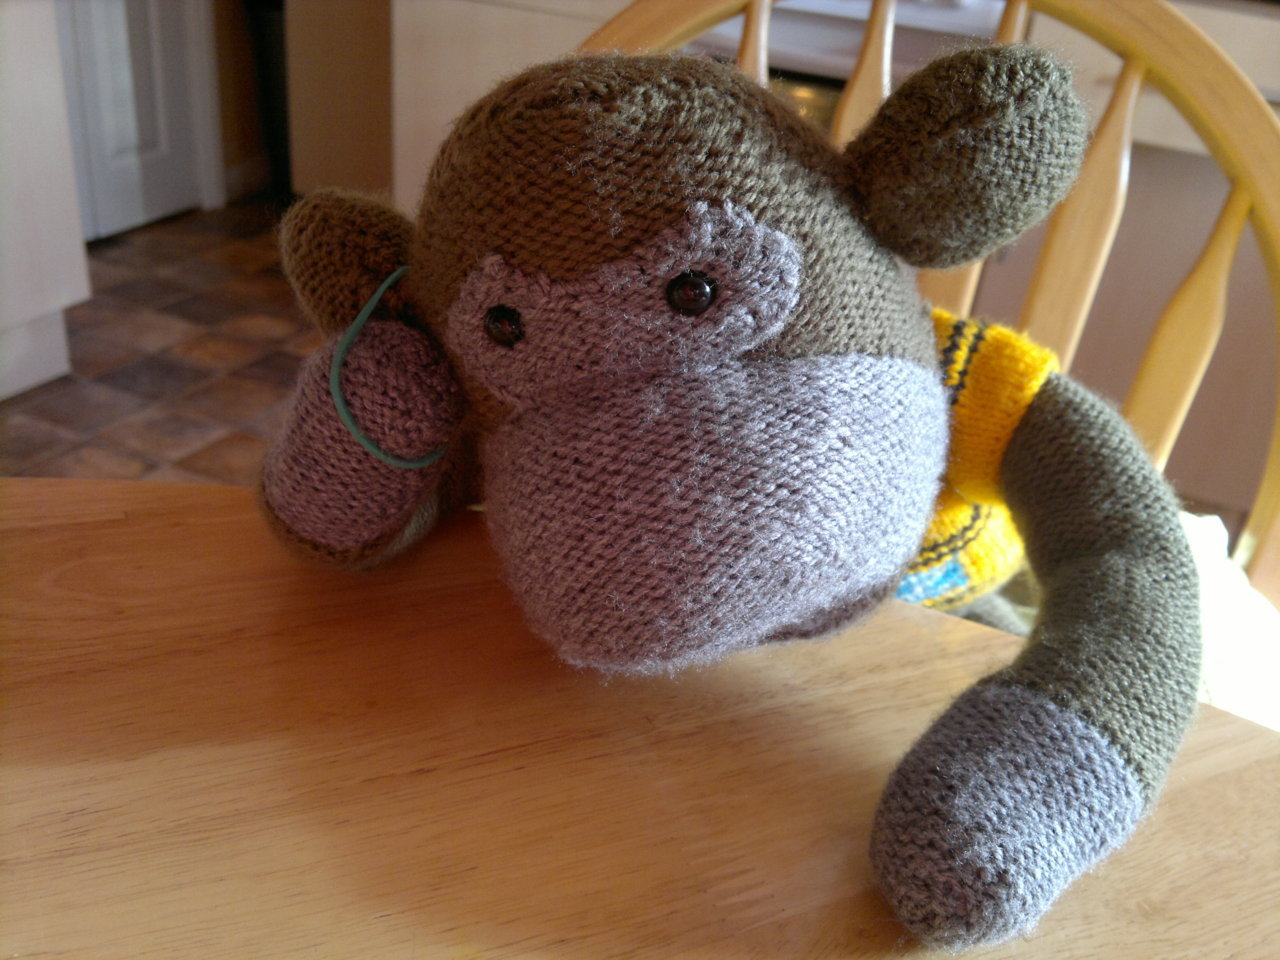 Its been a rough day for Monkey, poor guy had too much wine.